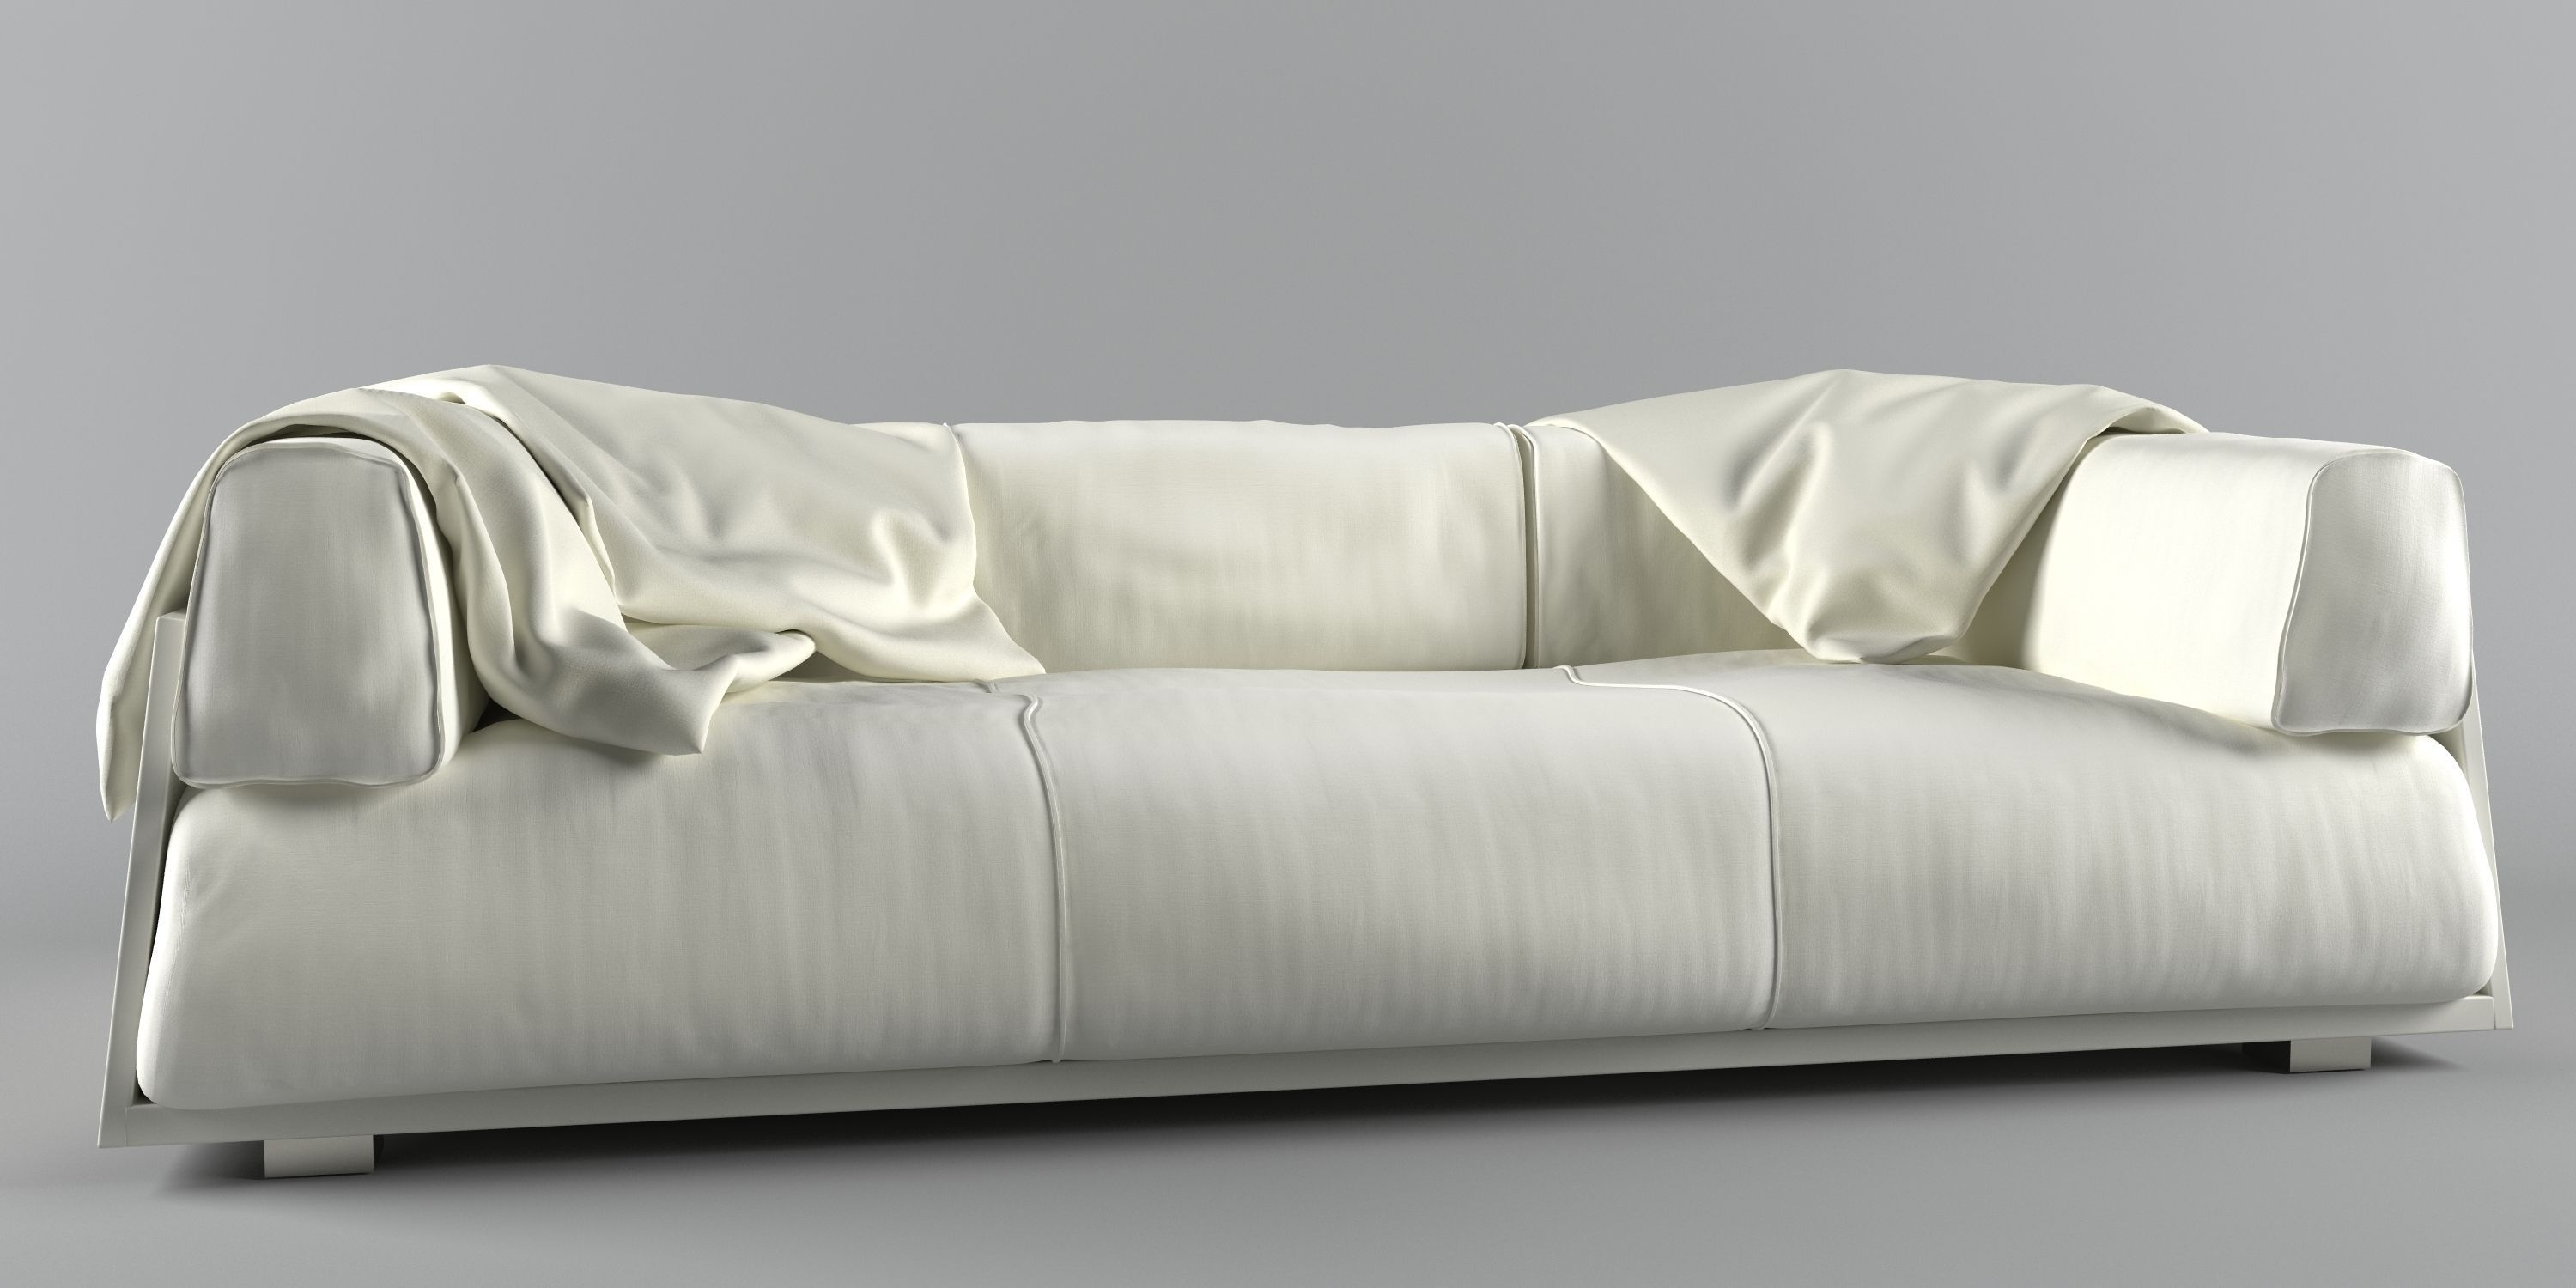 Widely Used Beautiful Soft Sofa 24 For Sofas And Couches Ideas With Soft Sofa In Soft Sofas (View 9 of 15)